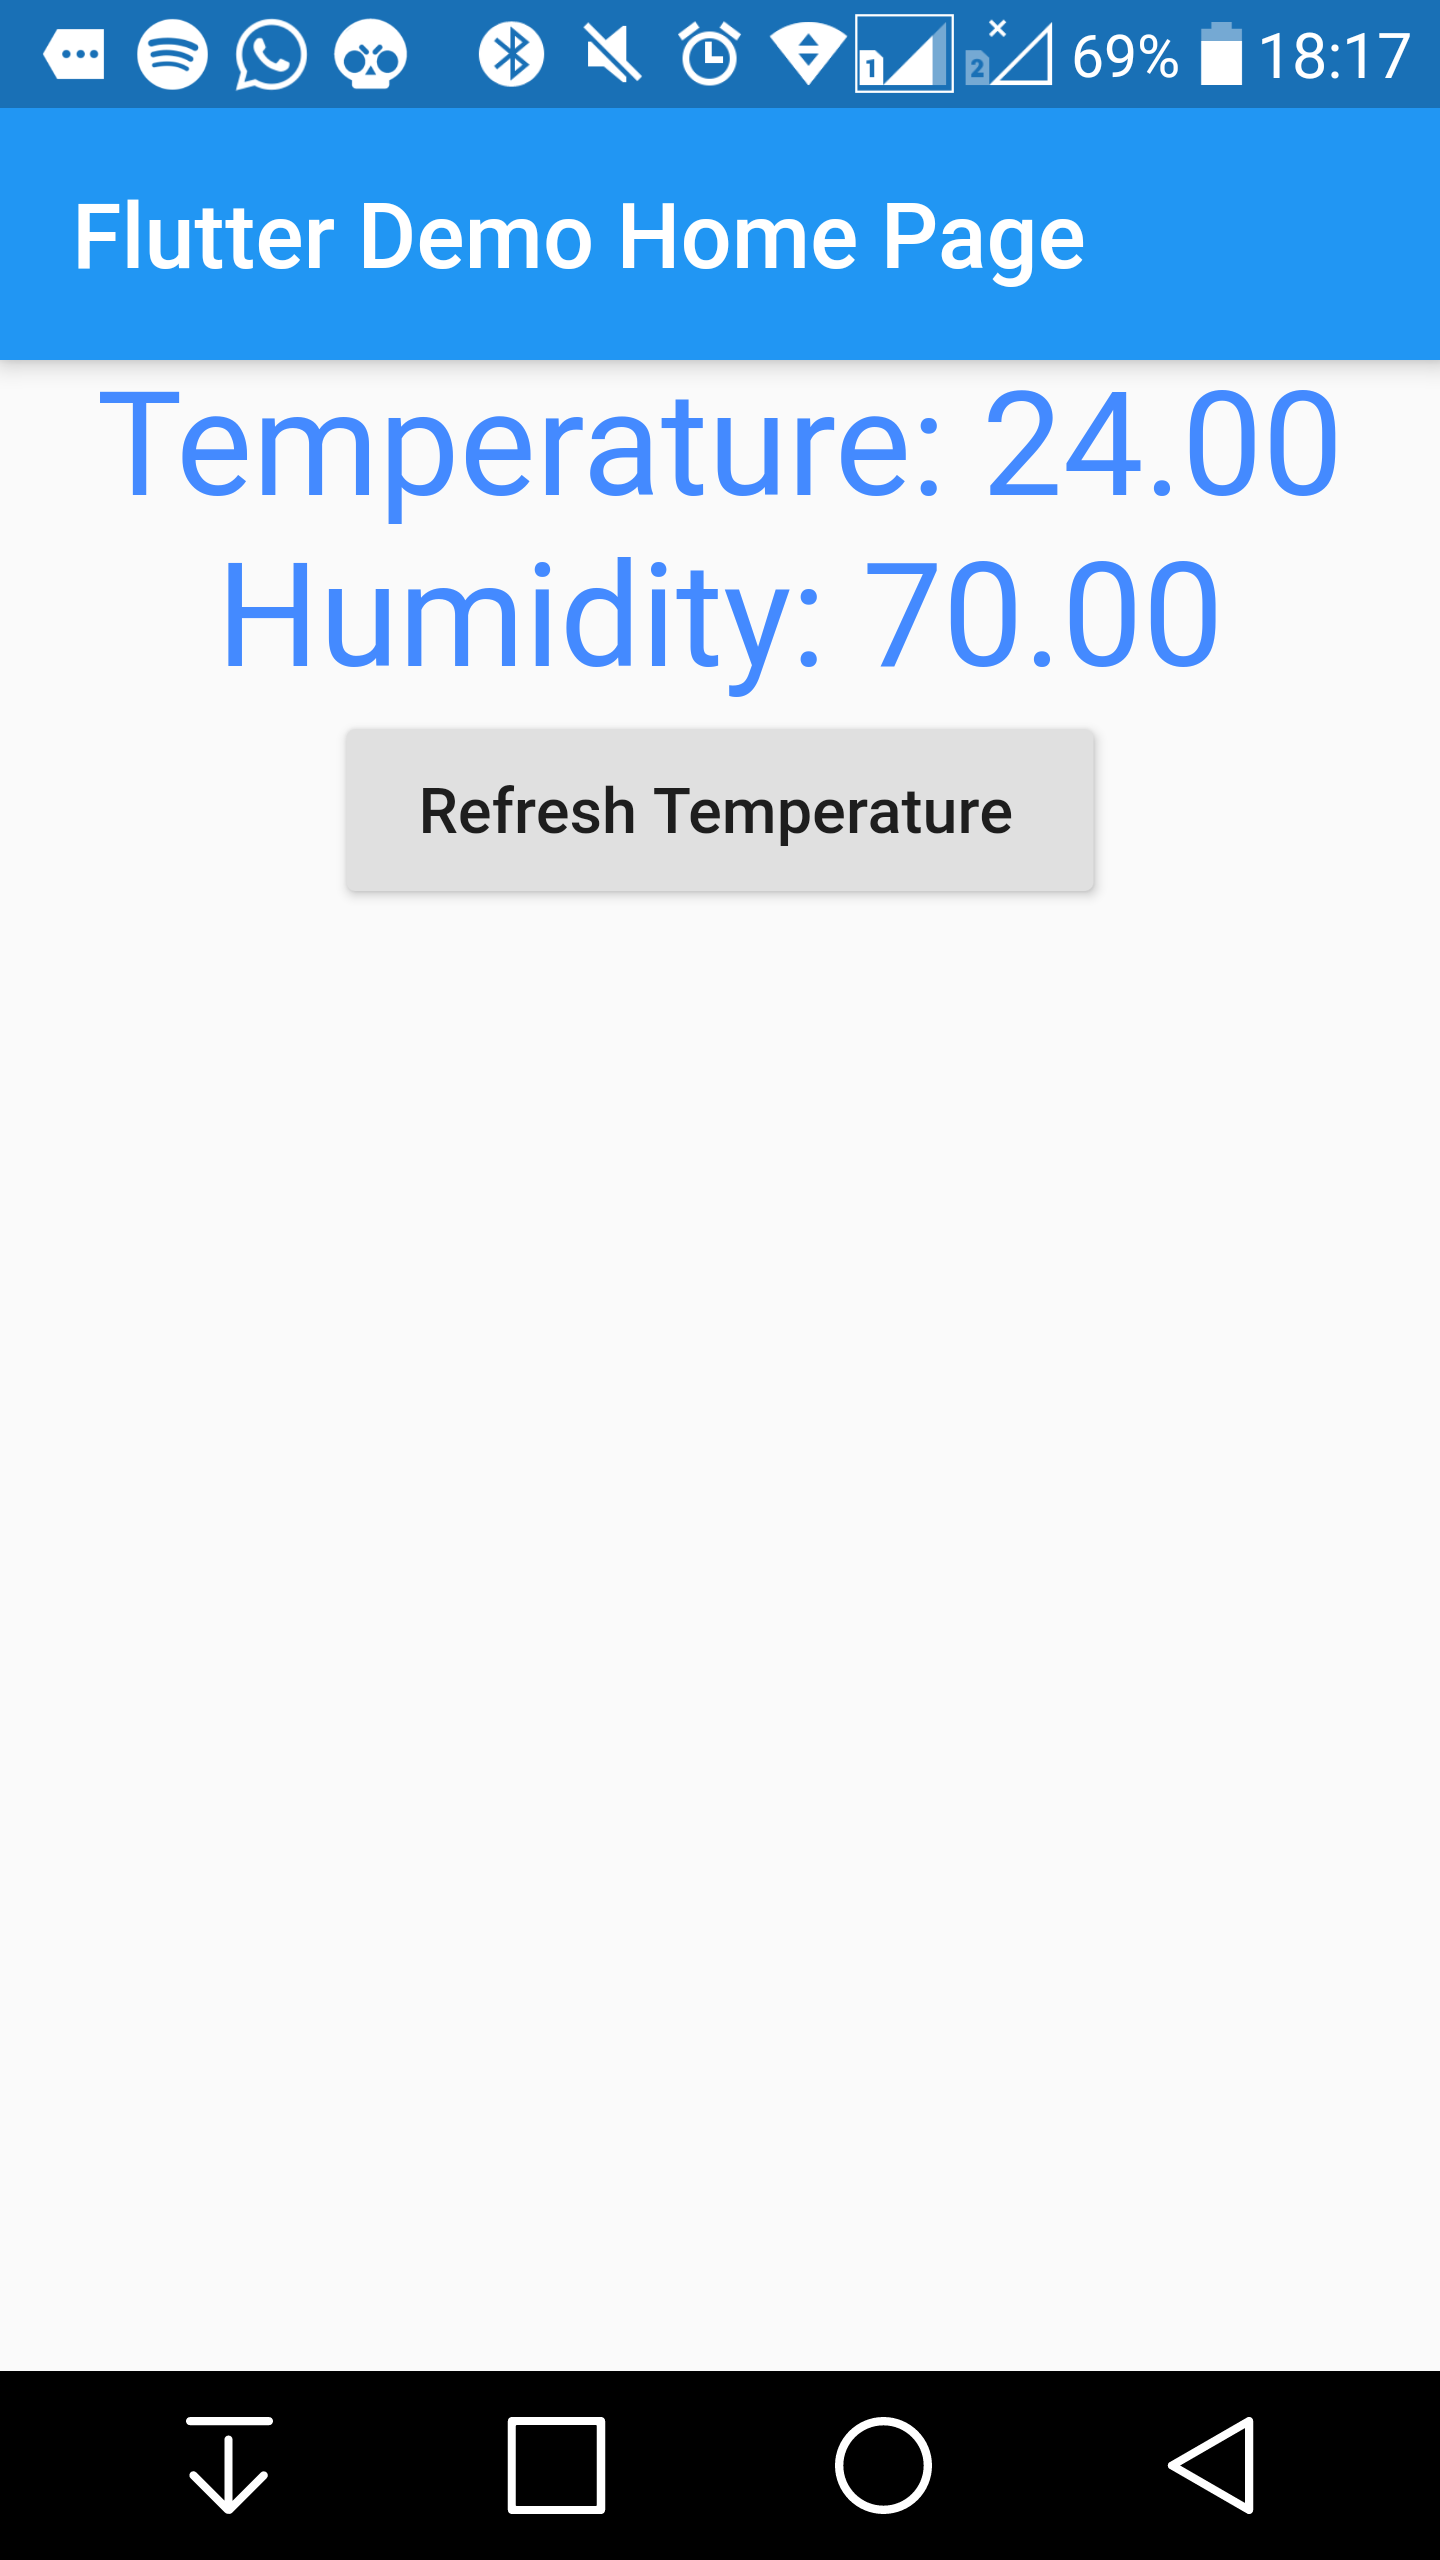 Using temperature sensor DHT11 to send information to Azure